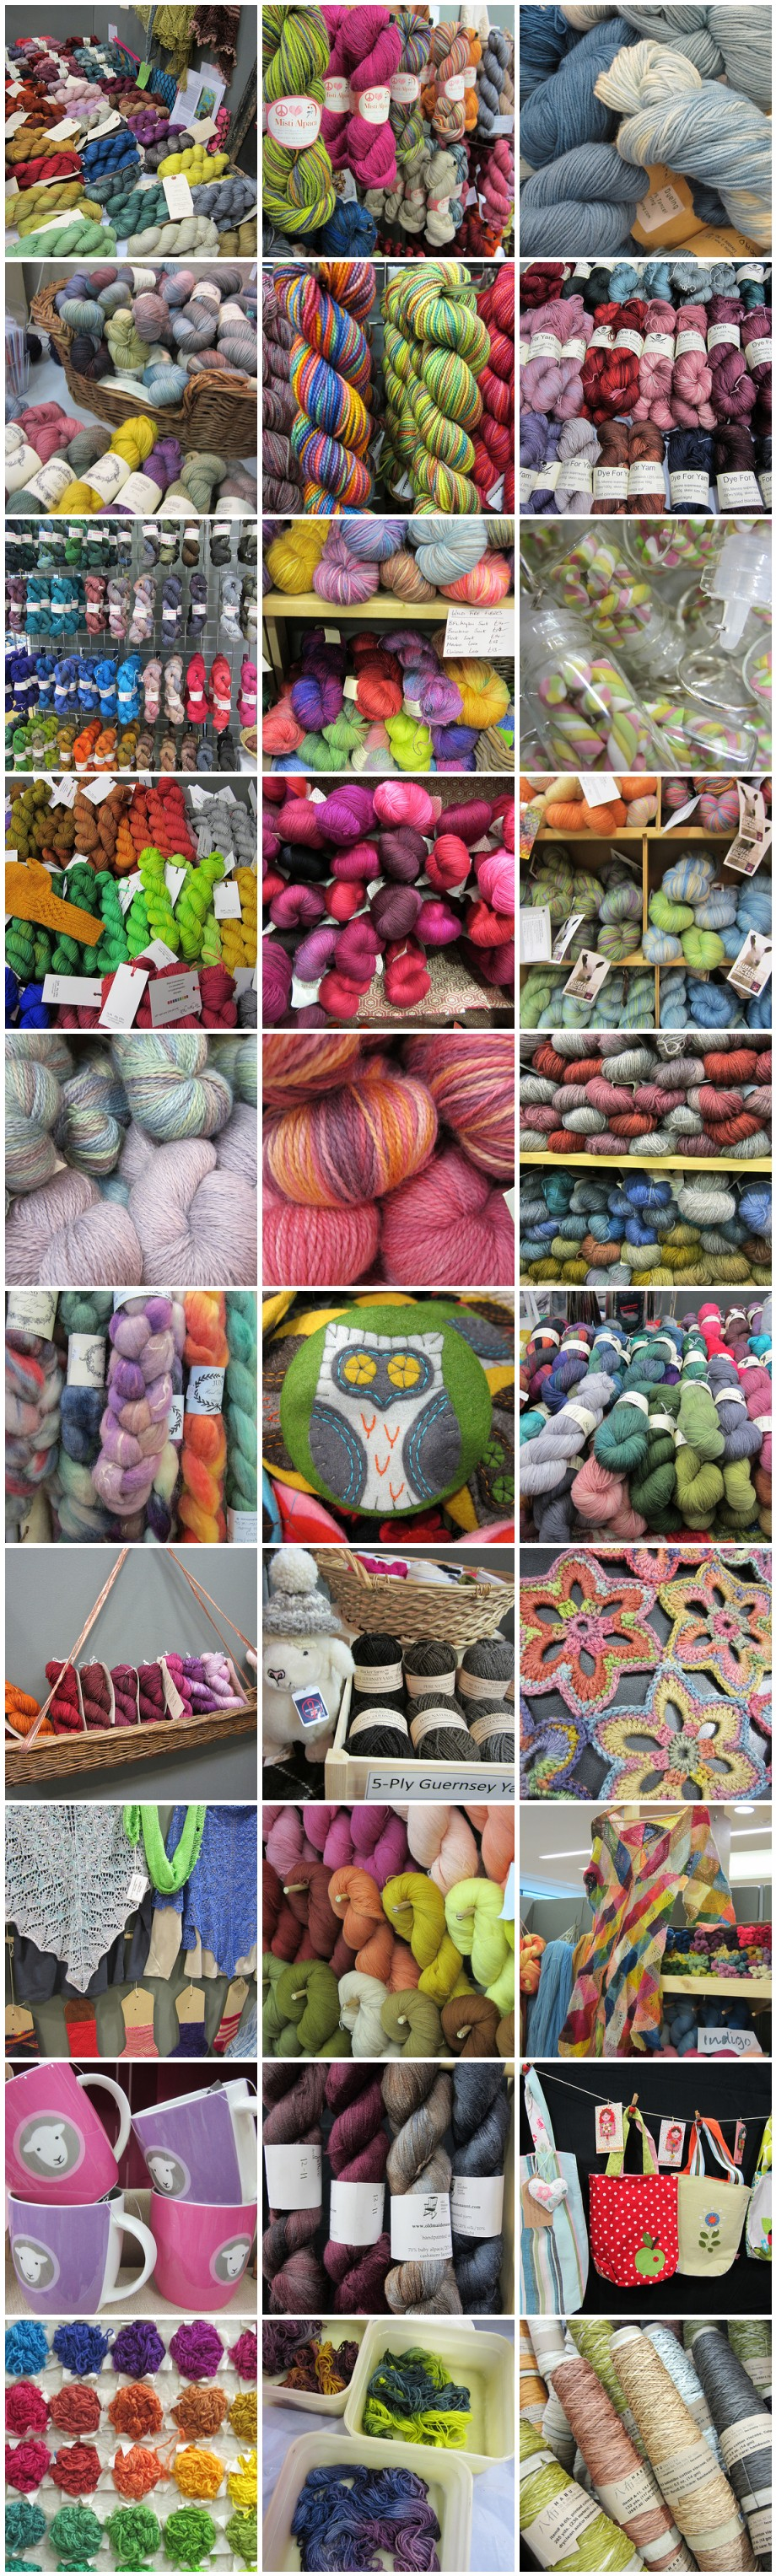 Knit Nation 2011 montage